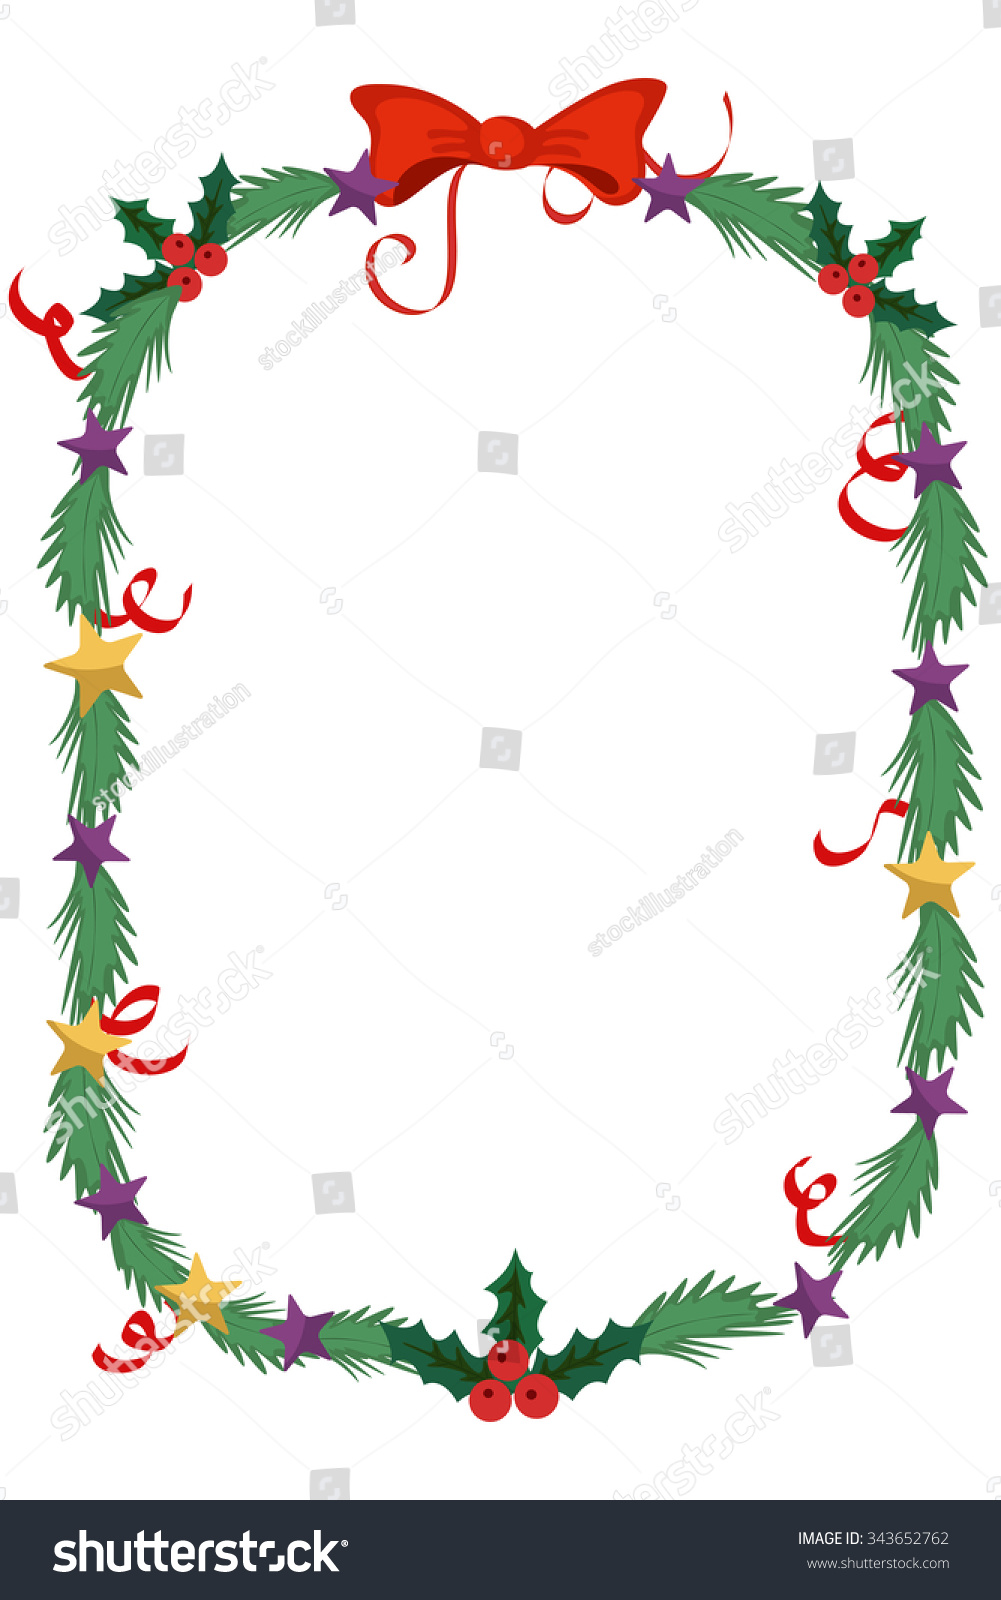 Merry Christmas Celebration Border Decoration Frame Stock Photo ...